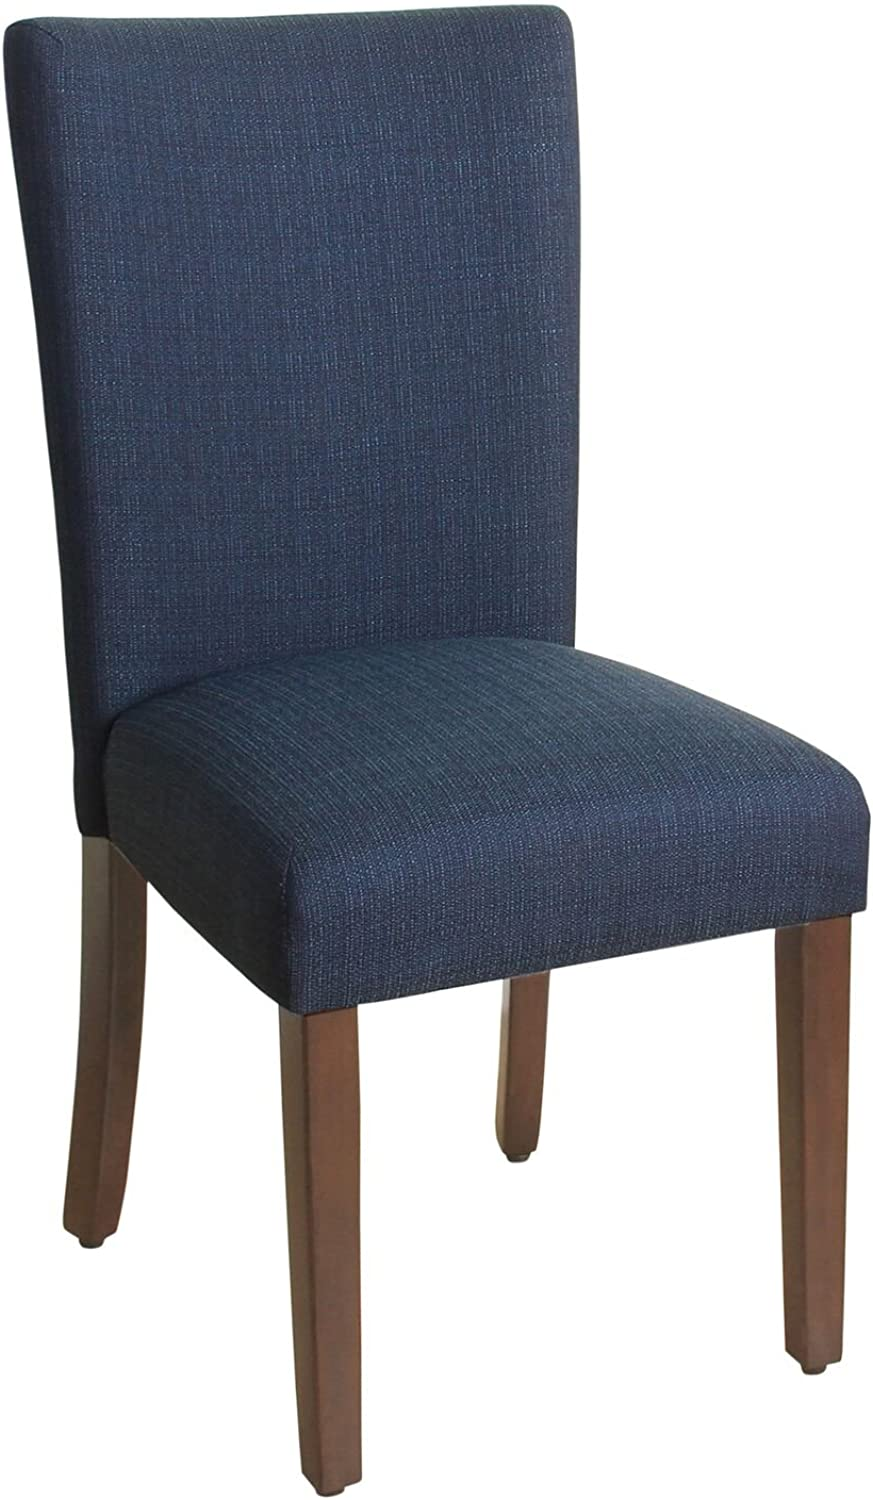 HomePop Parsons Classic Upholstered Accent Dining Chair, Single Pack, Dark bluee